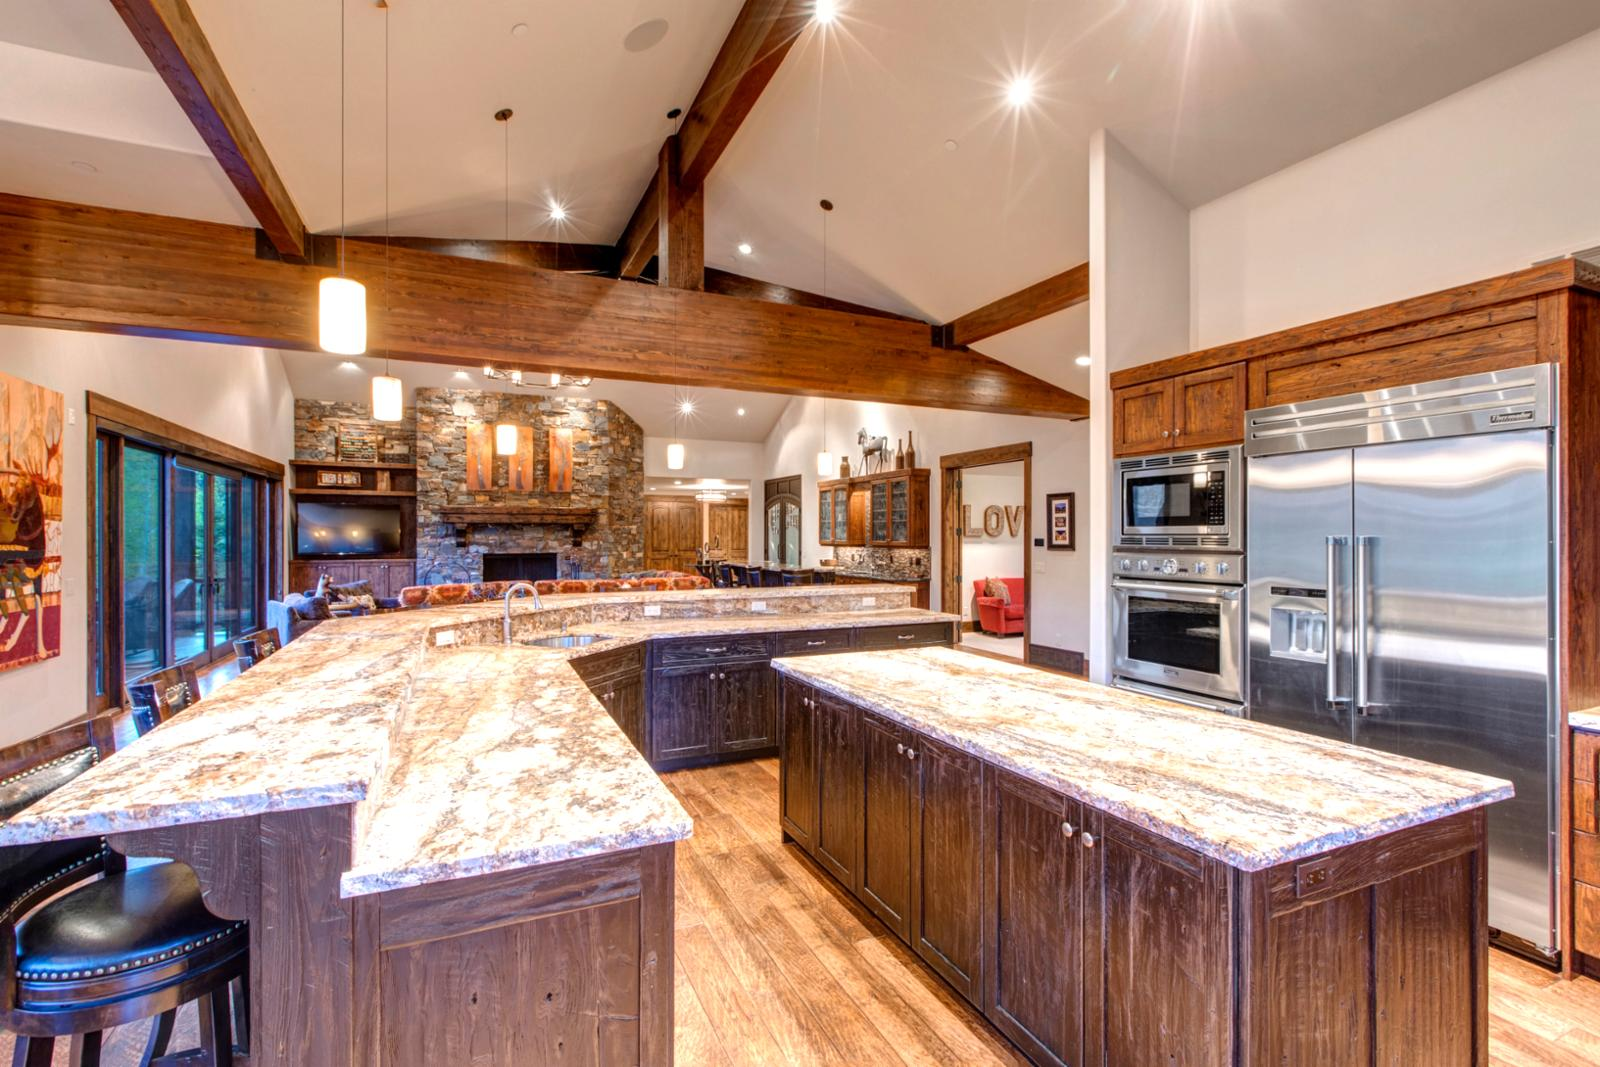 Cook & socializing is no problem with this open concept kitchen